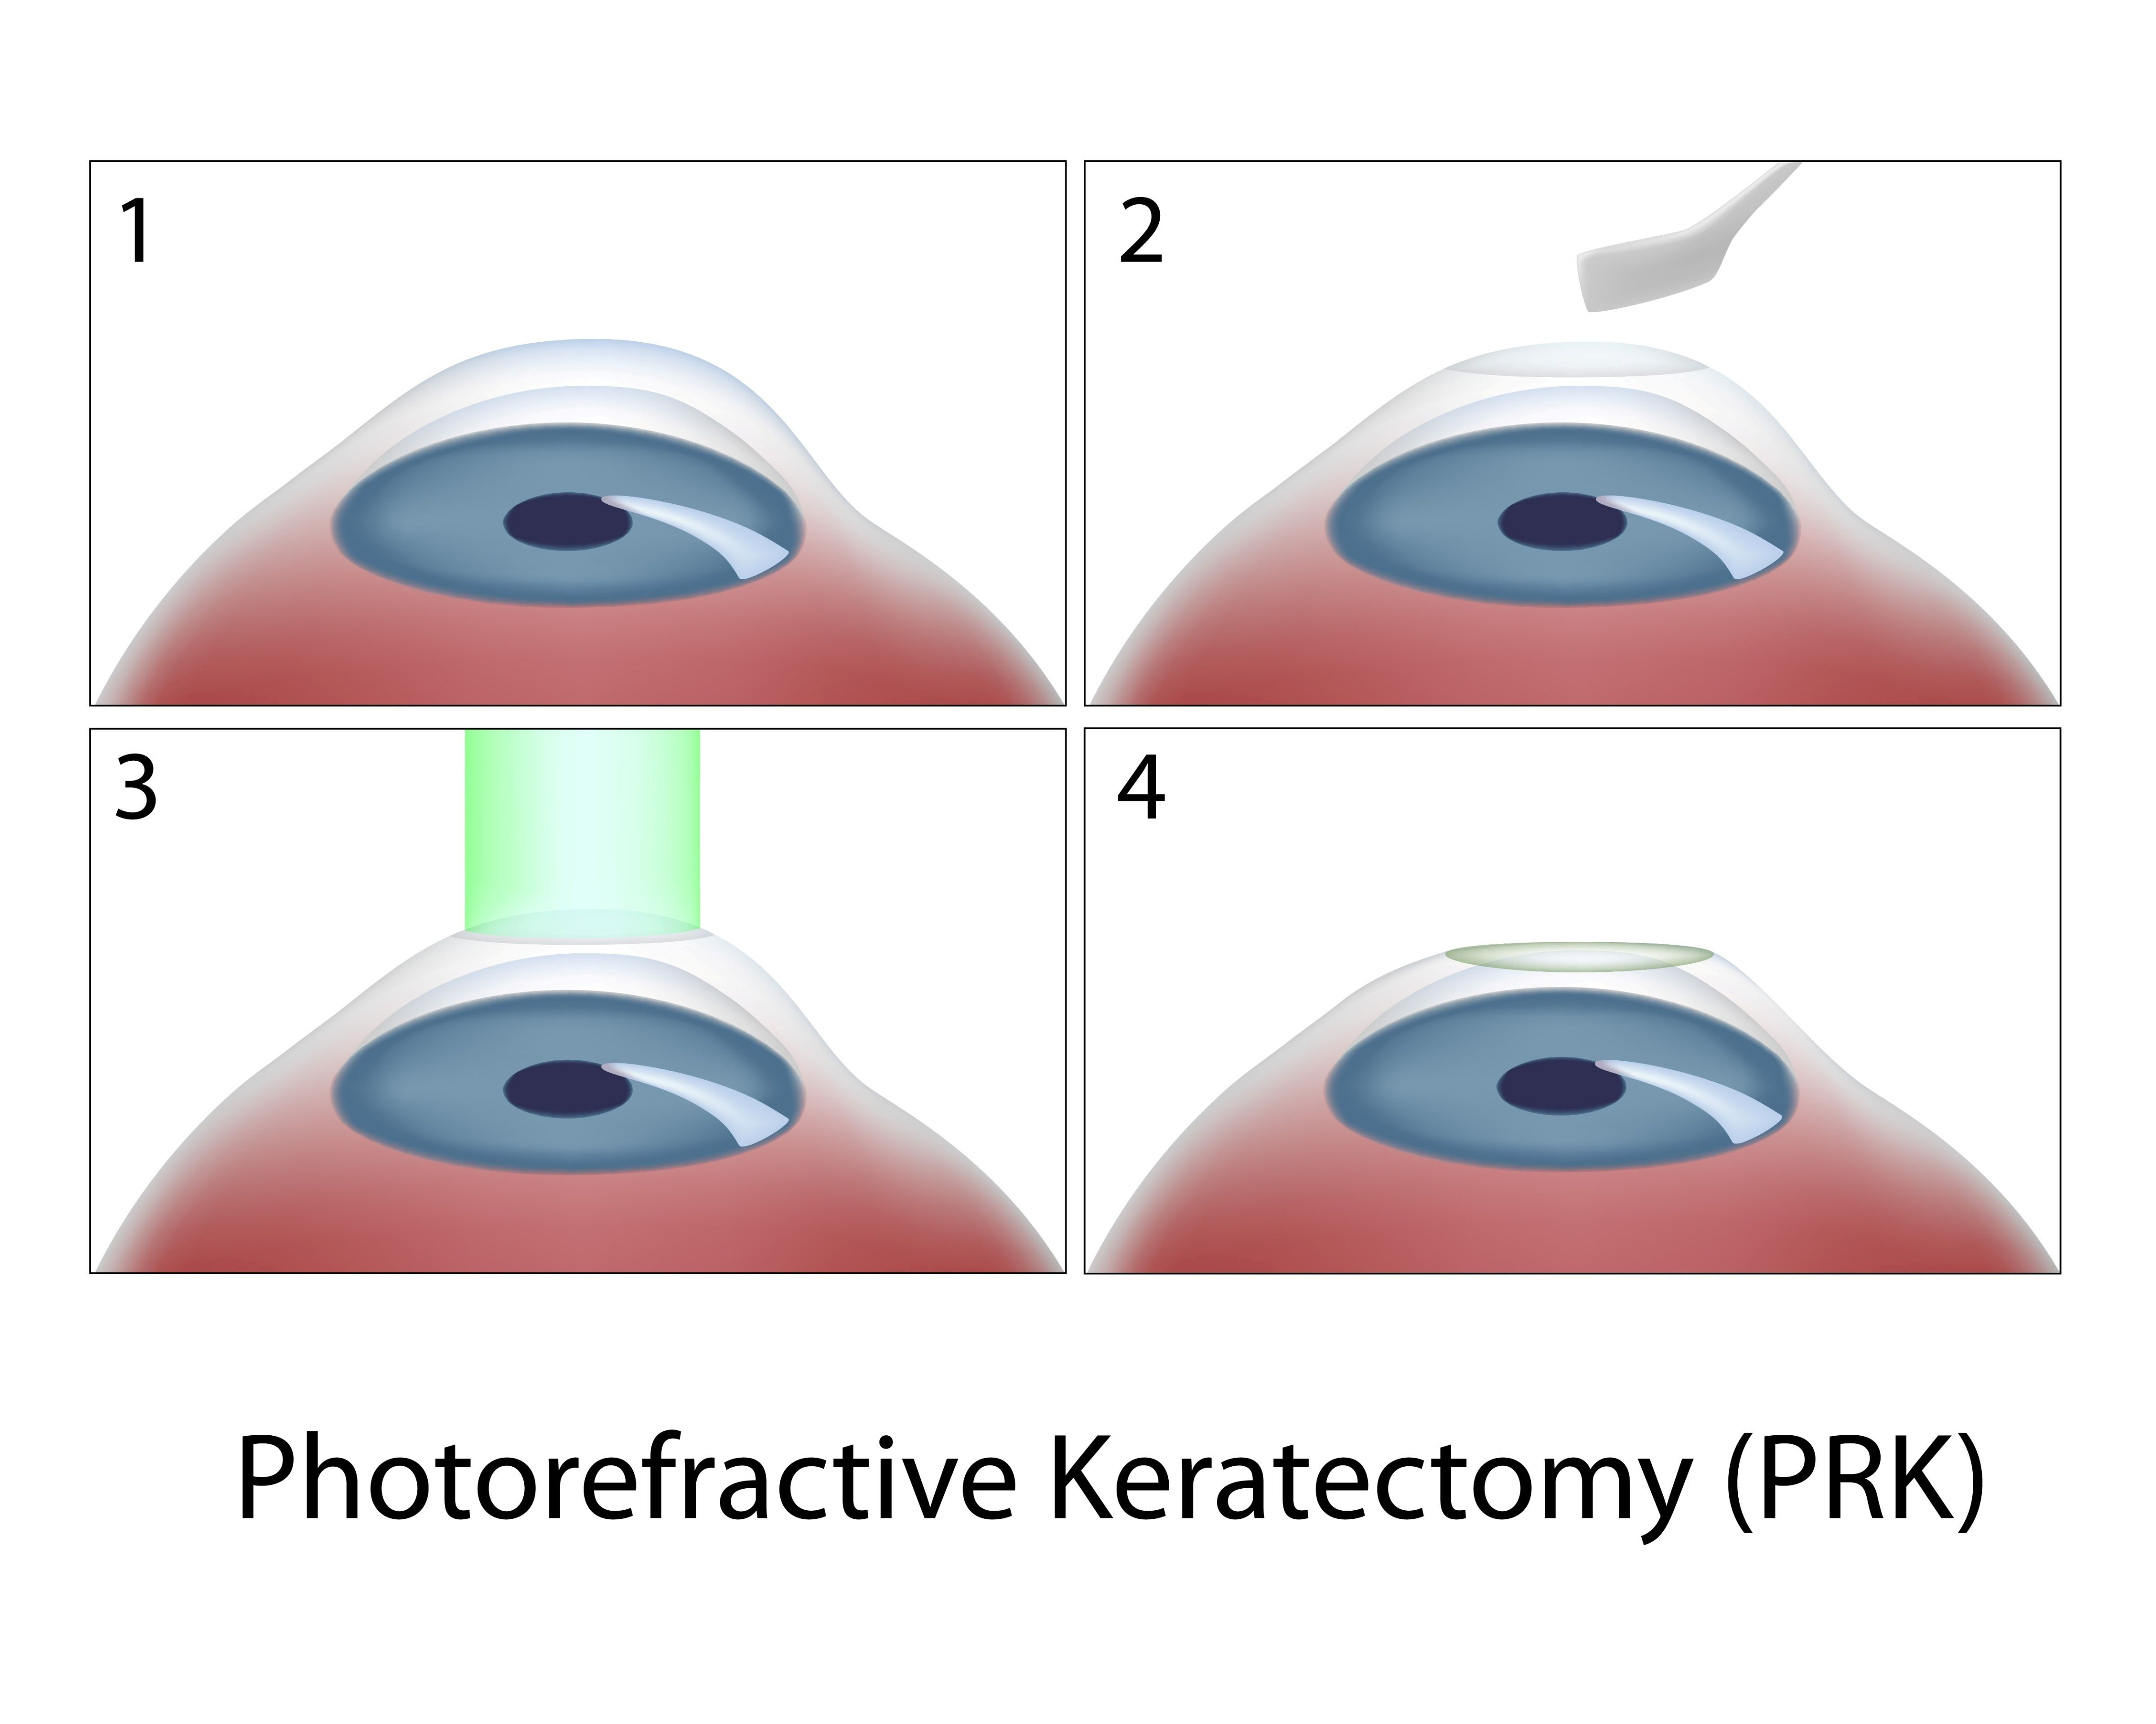 digital four-panel illustration of photorefractive keratectomy (PRK) procedure